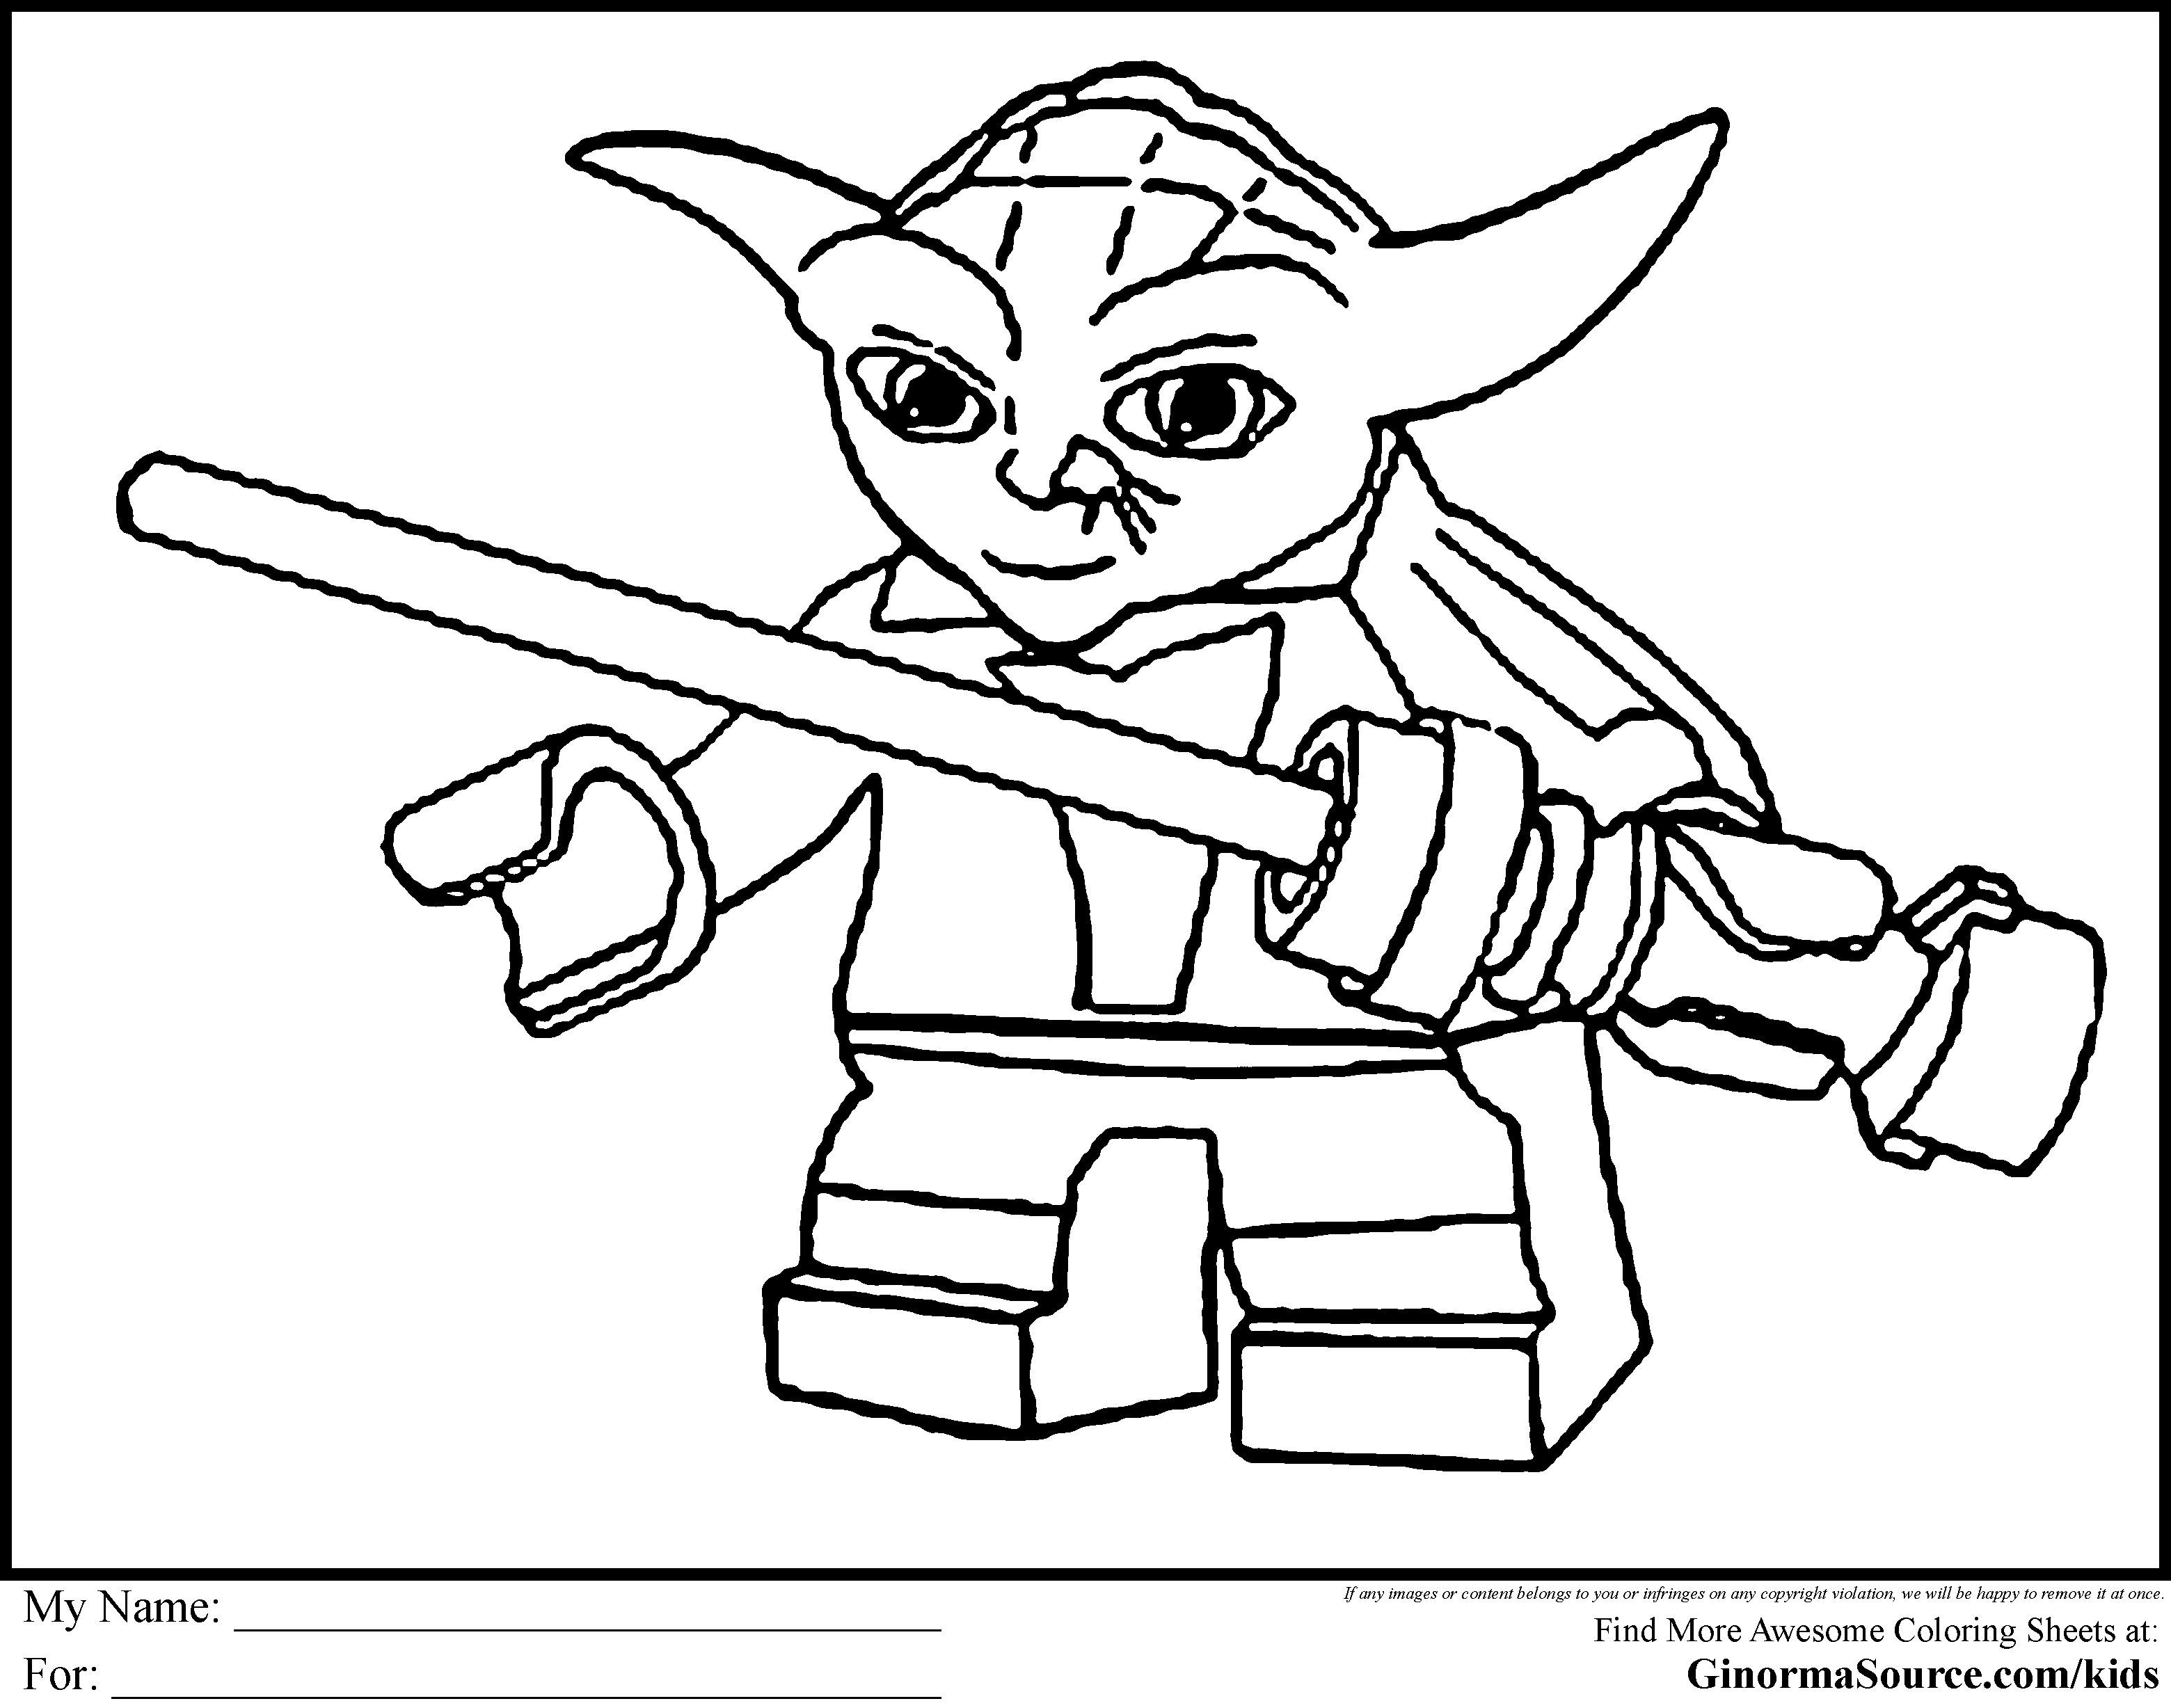 free lego star wars coloring pages lego coloring pages starwars yoda ginormasource kids - Yoda Coloring Pages